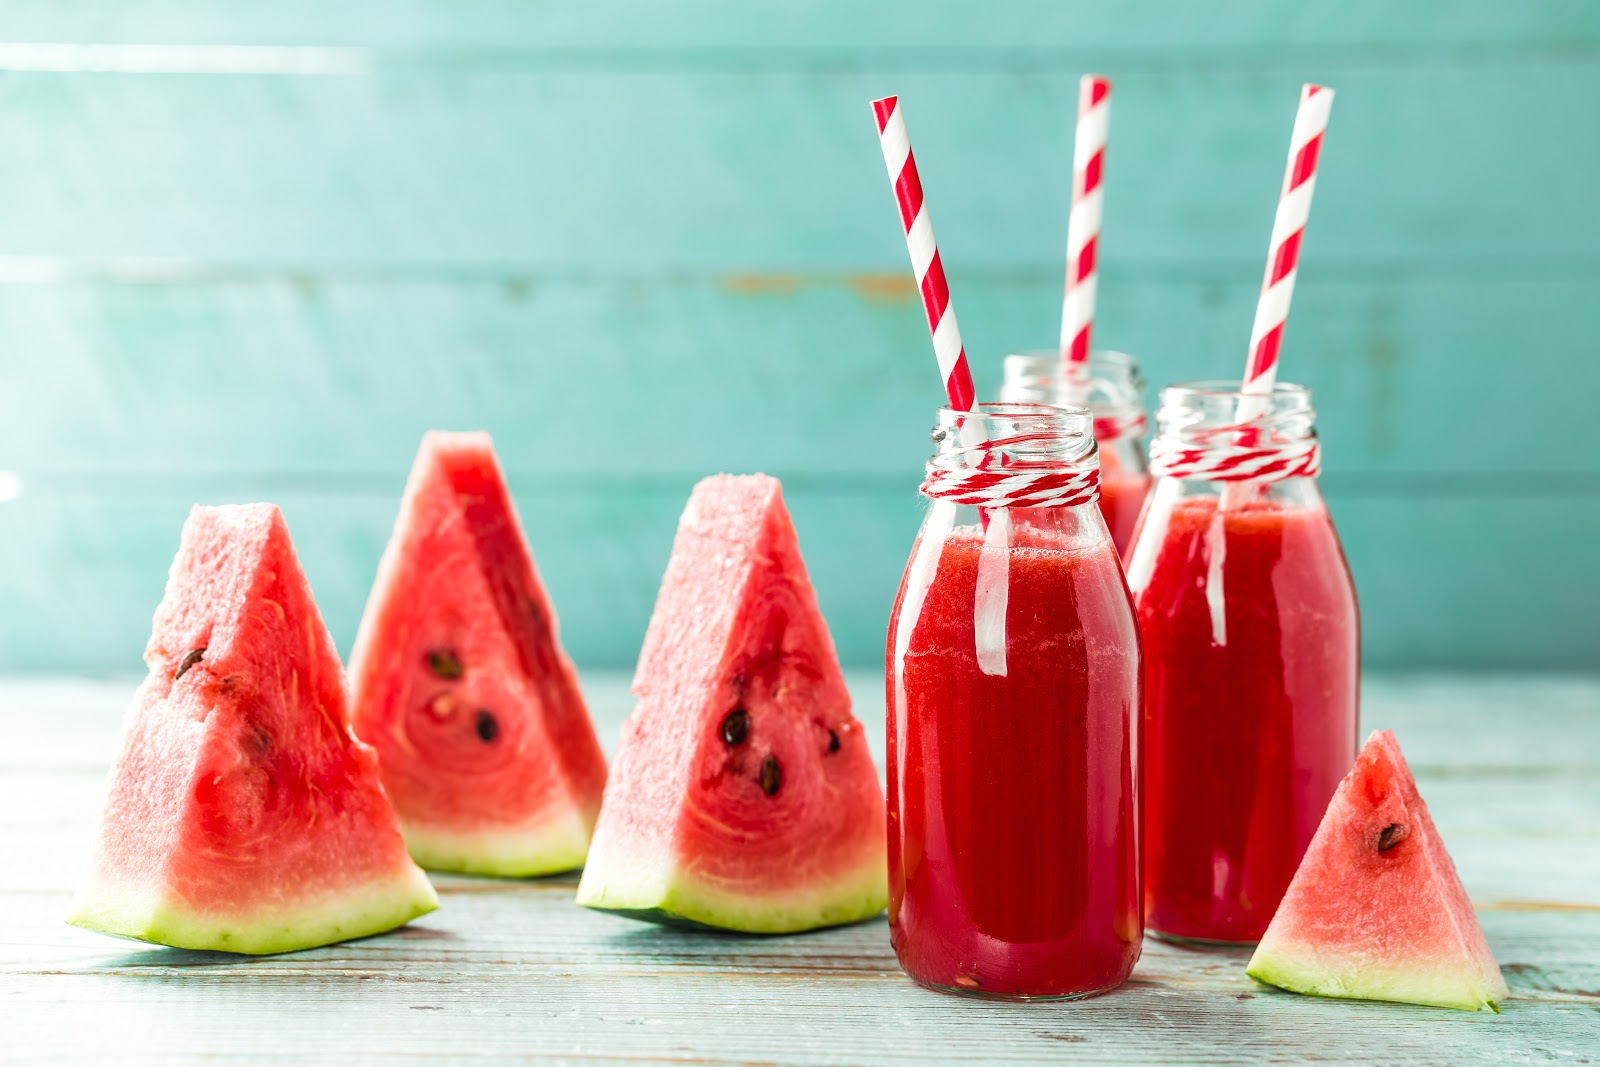 Healthy food. Watermelon slices and juice drinks